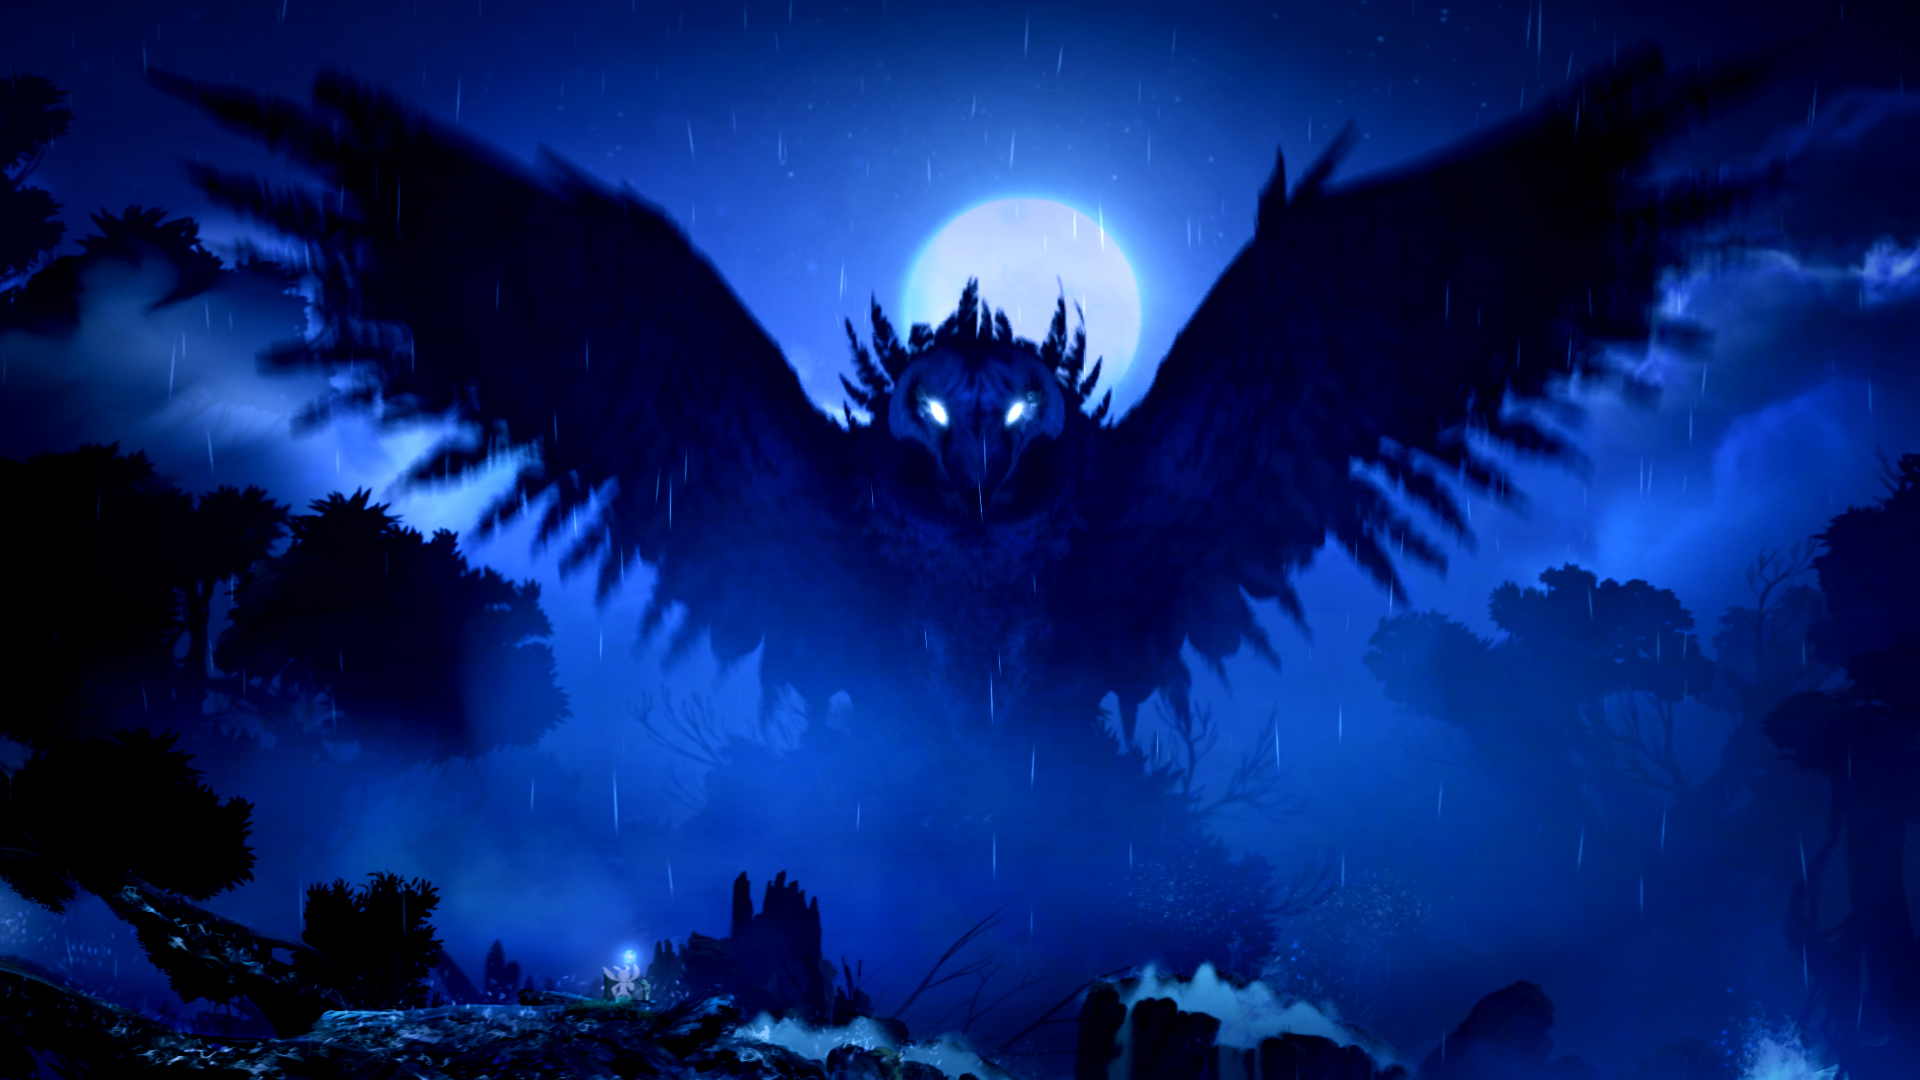 ori and the blind forest images ori and the blind forest hd